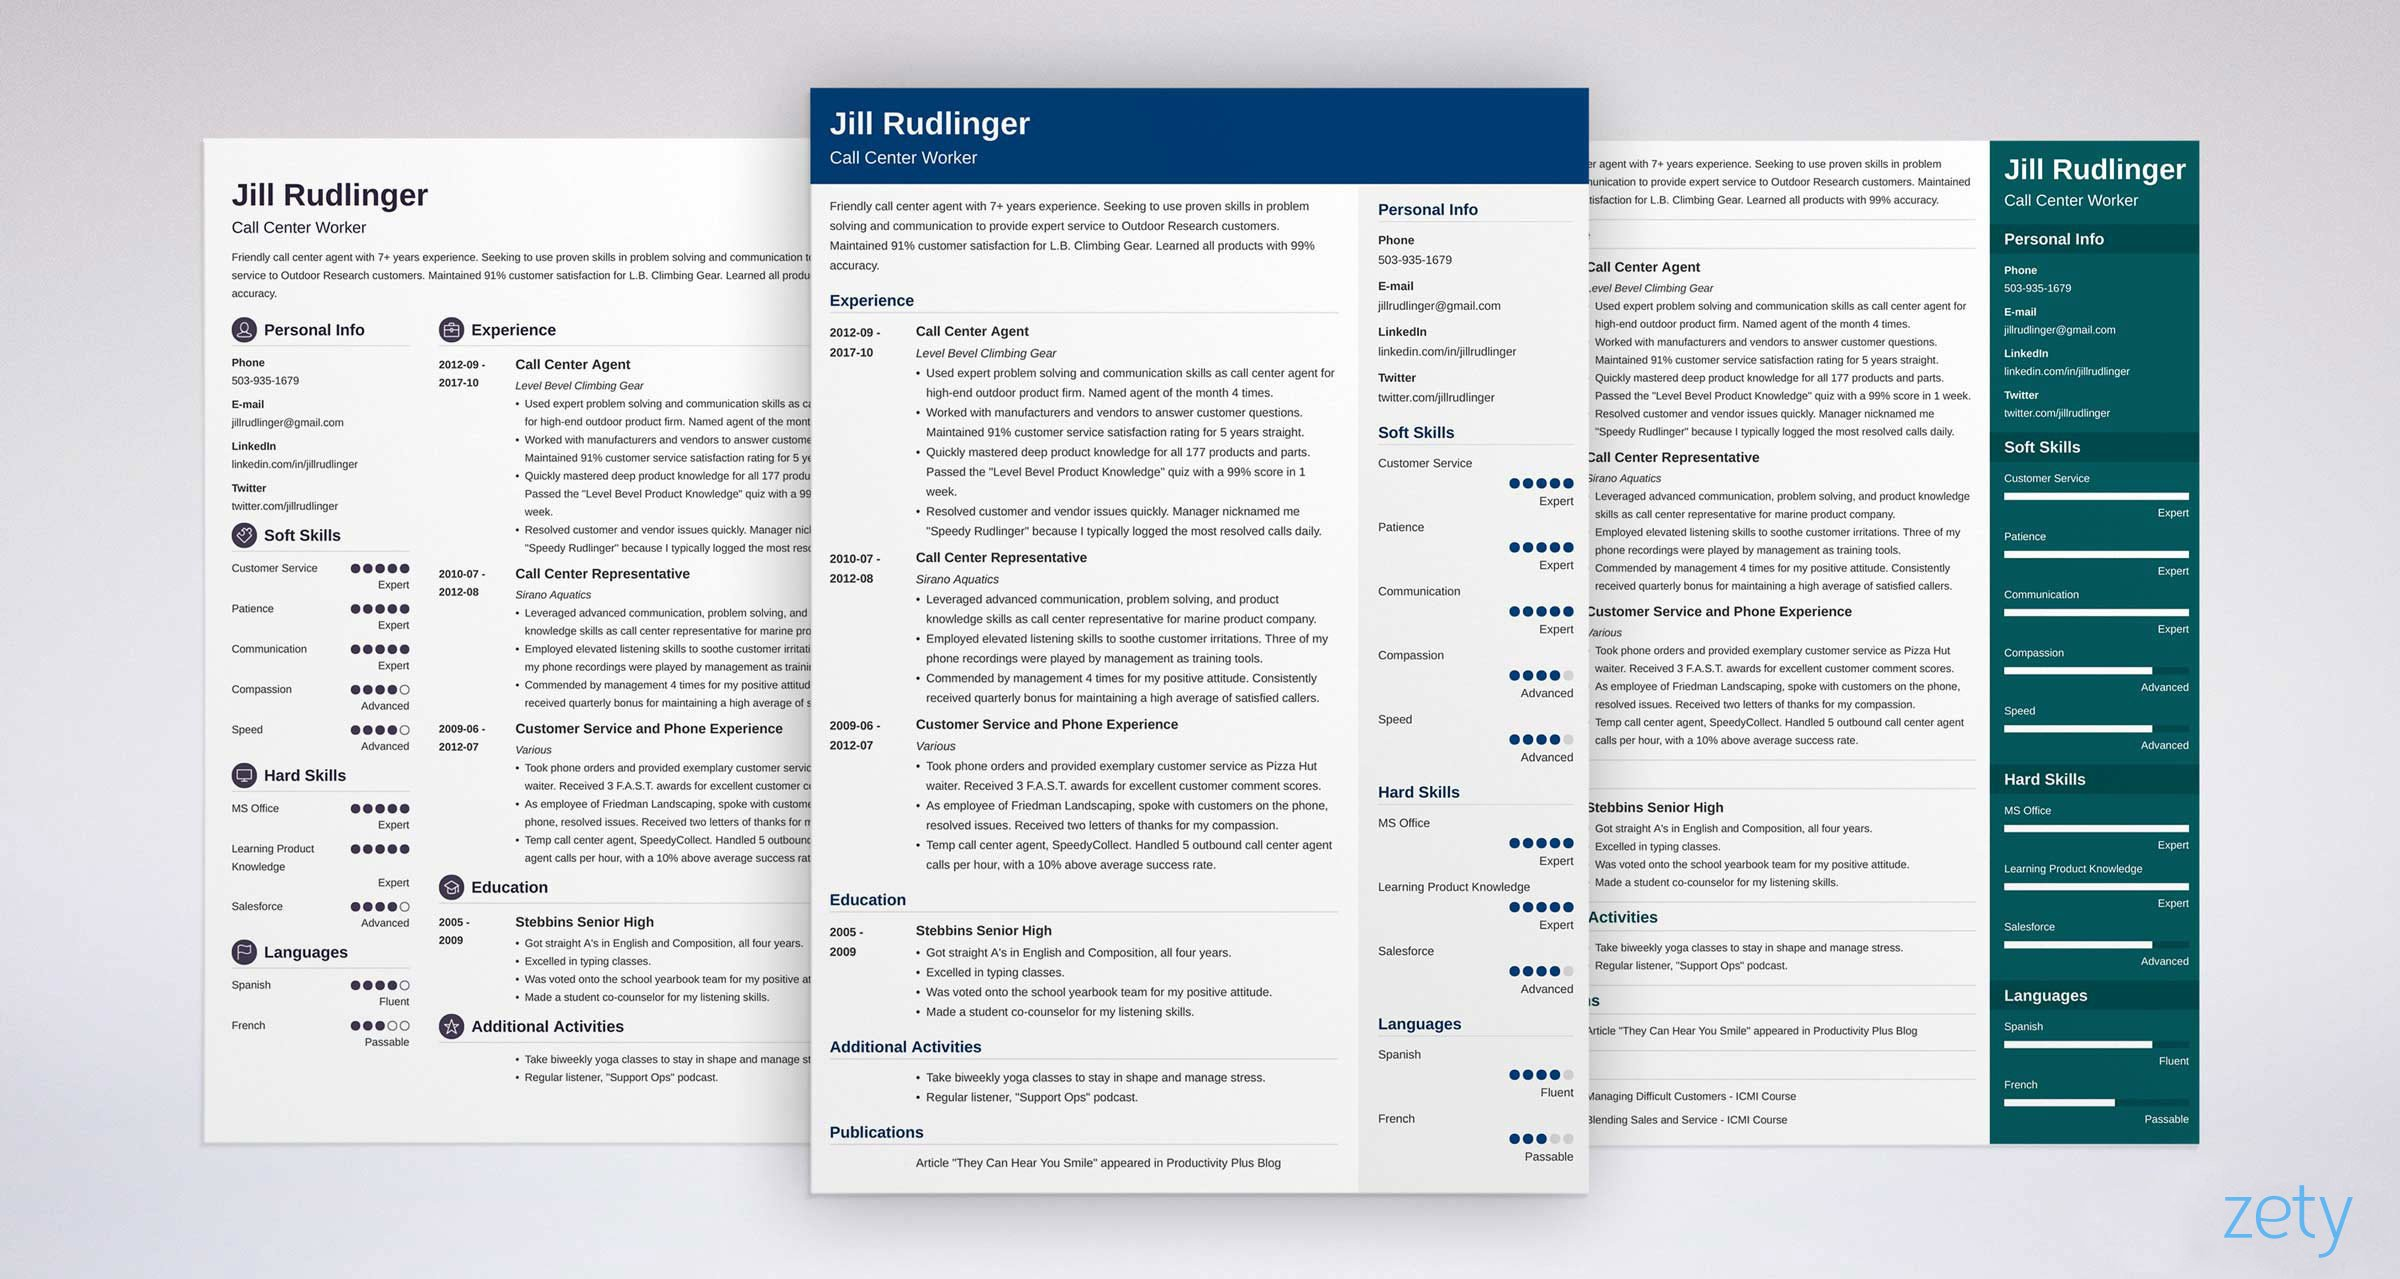 How To Create A Resume Template How To Make A Resume For A Job From Application To Interview In 24h